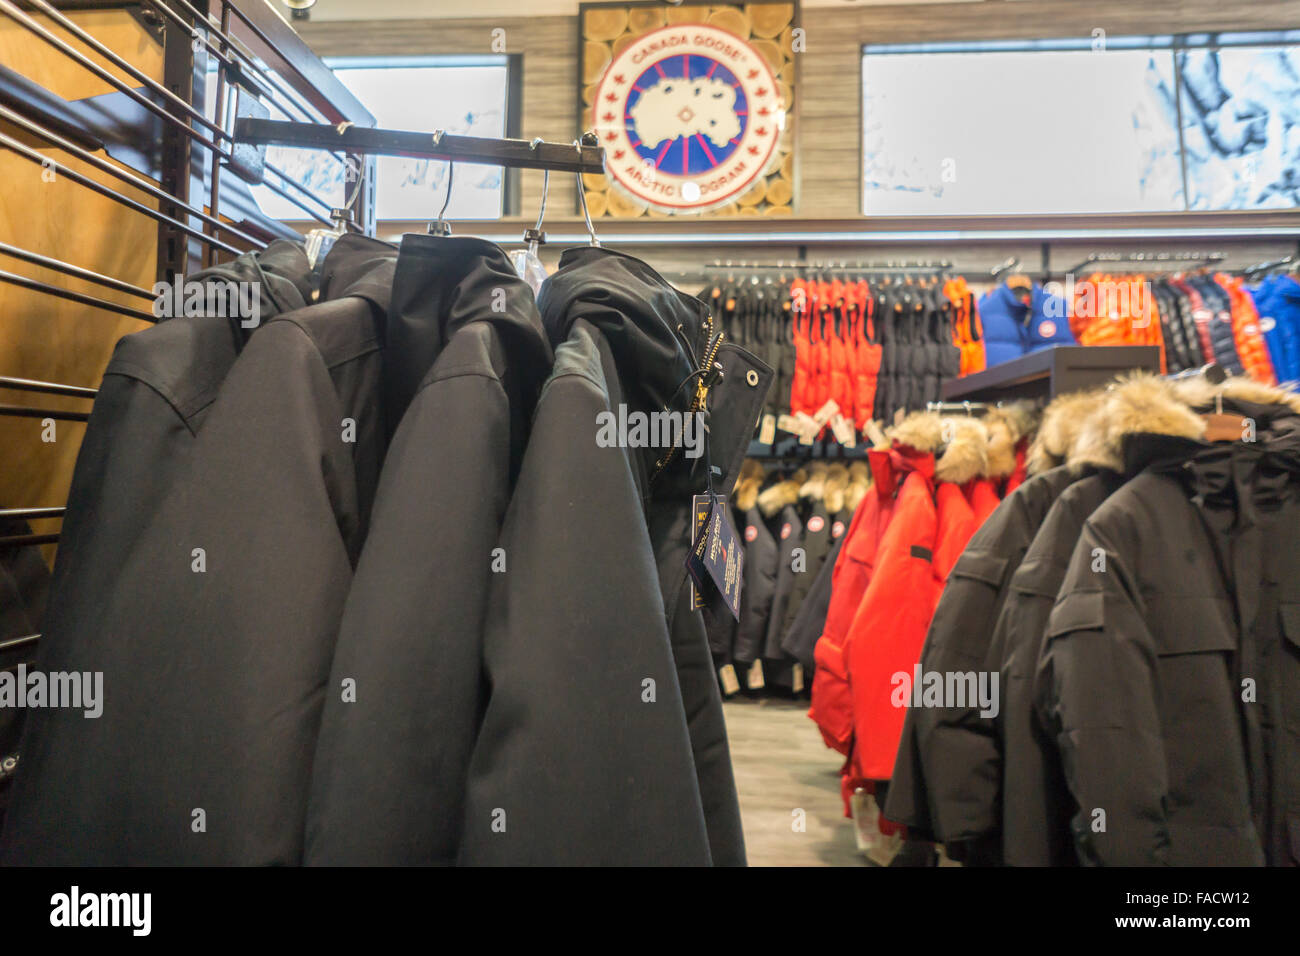 canada goose retailers in nyc